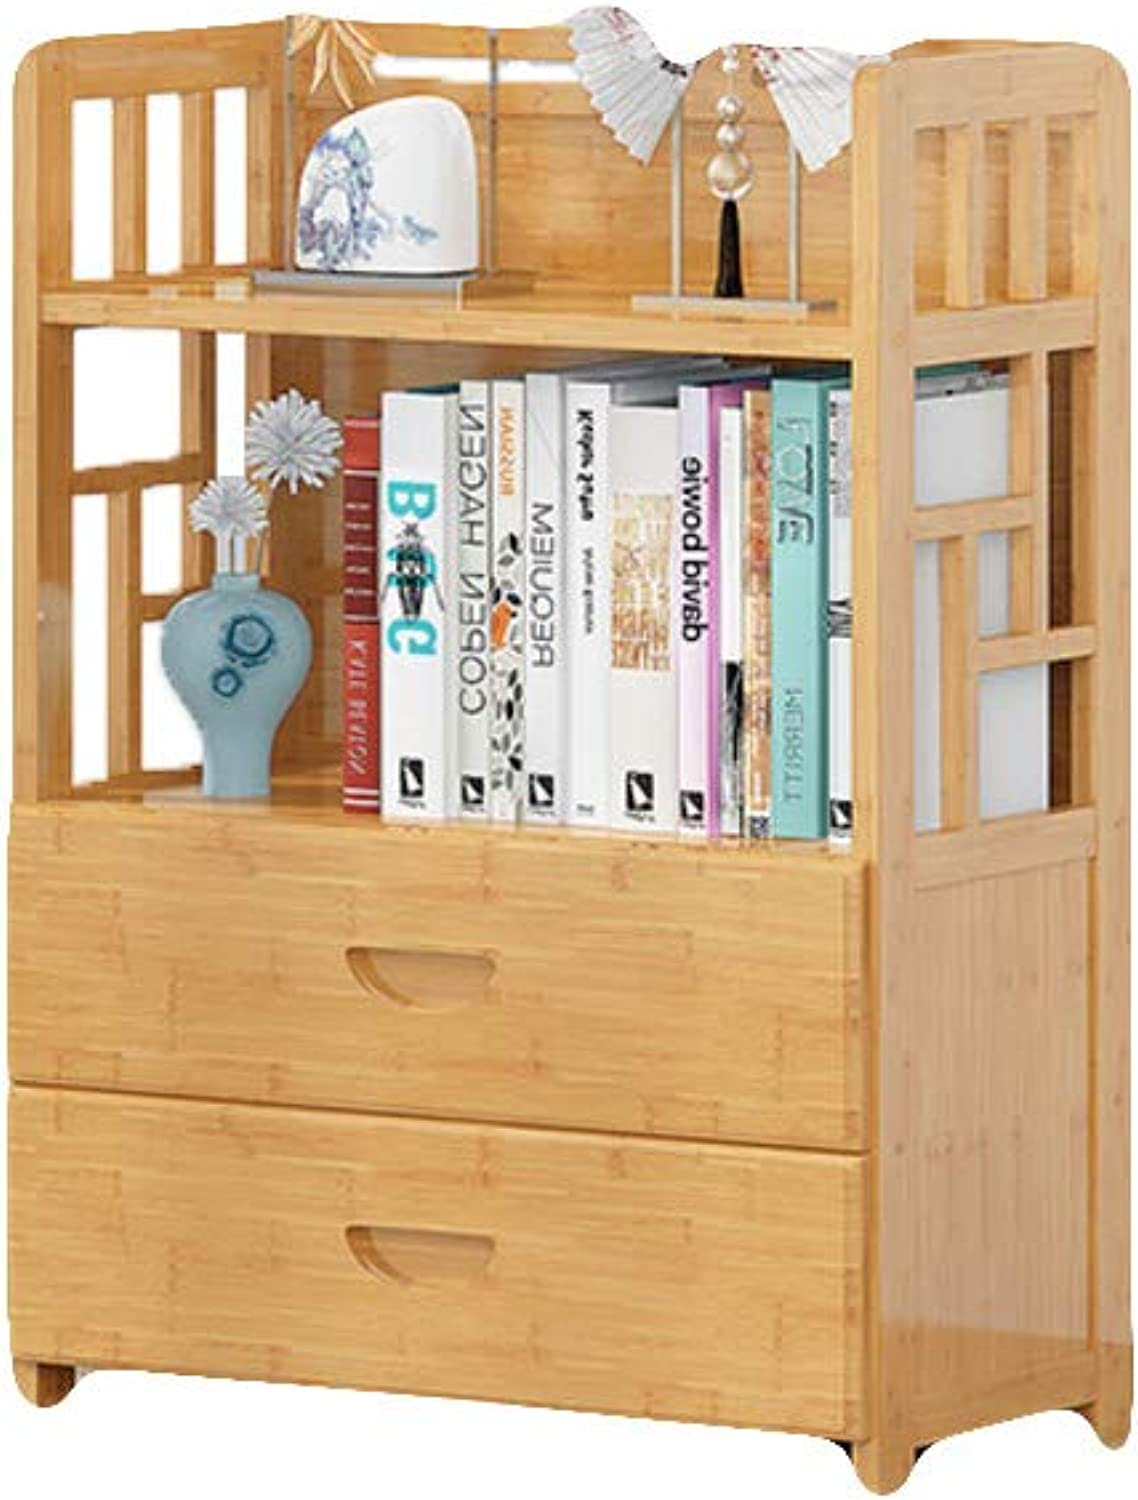 Multi-Space Storage Bamboo Bookshelf, Floor Simple Bookcase Book Shelf Wood Save Space Environmental Predection Gravity Wood Shelves-A 50X25X83cm